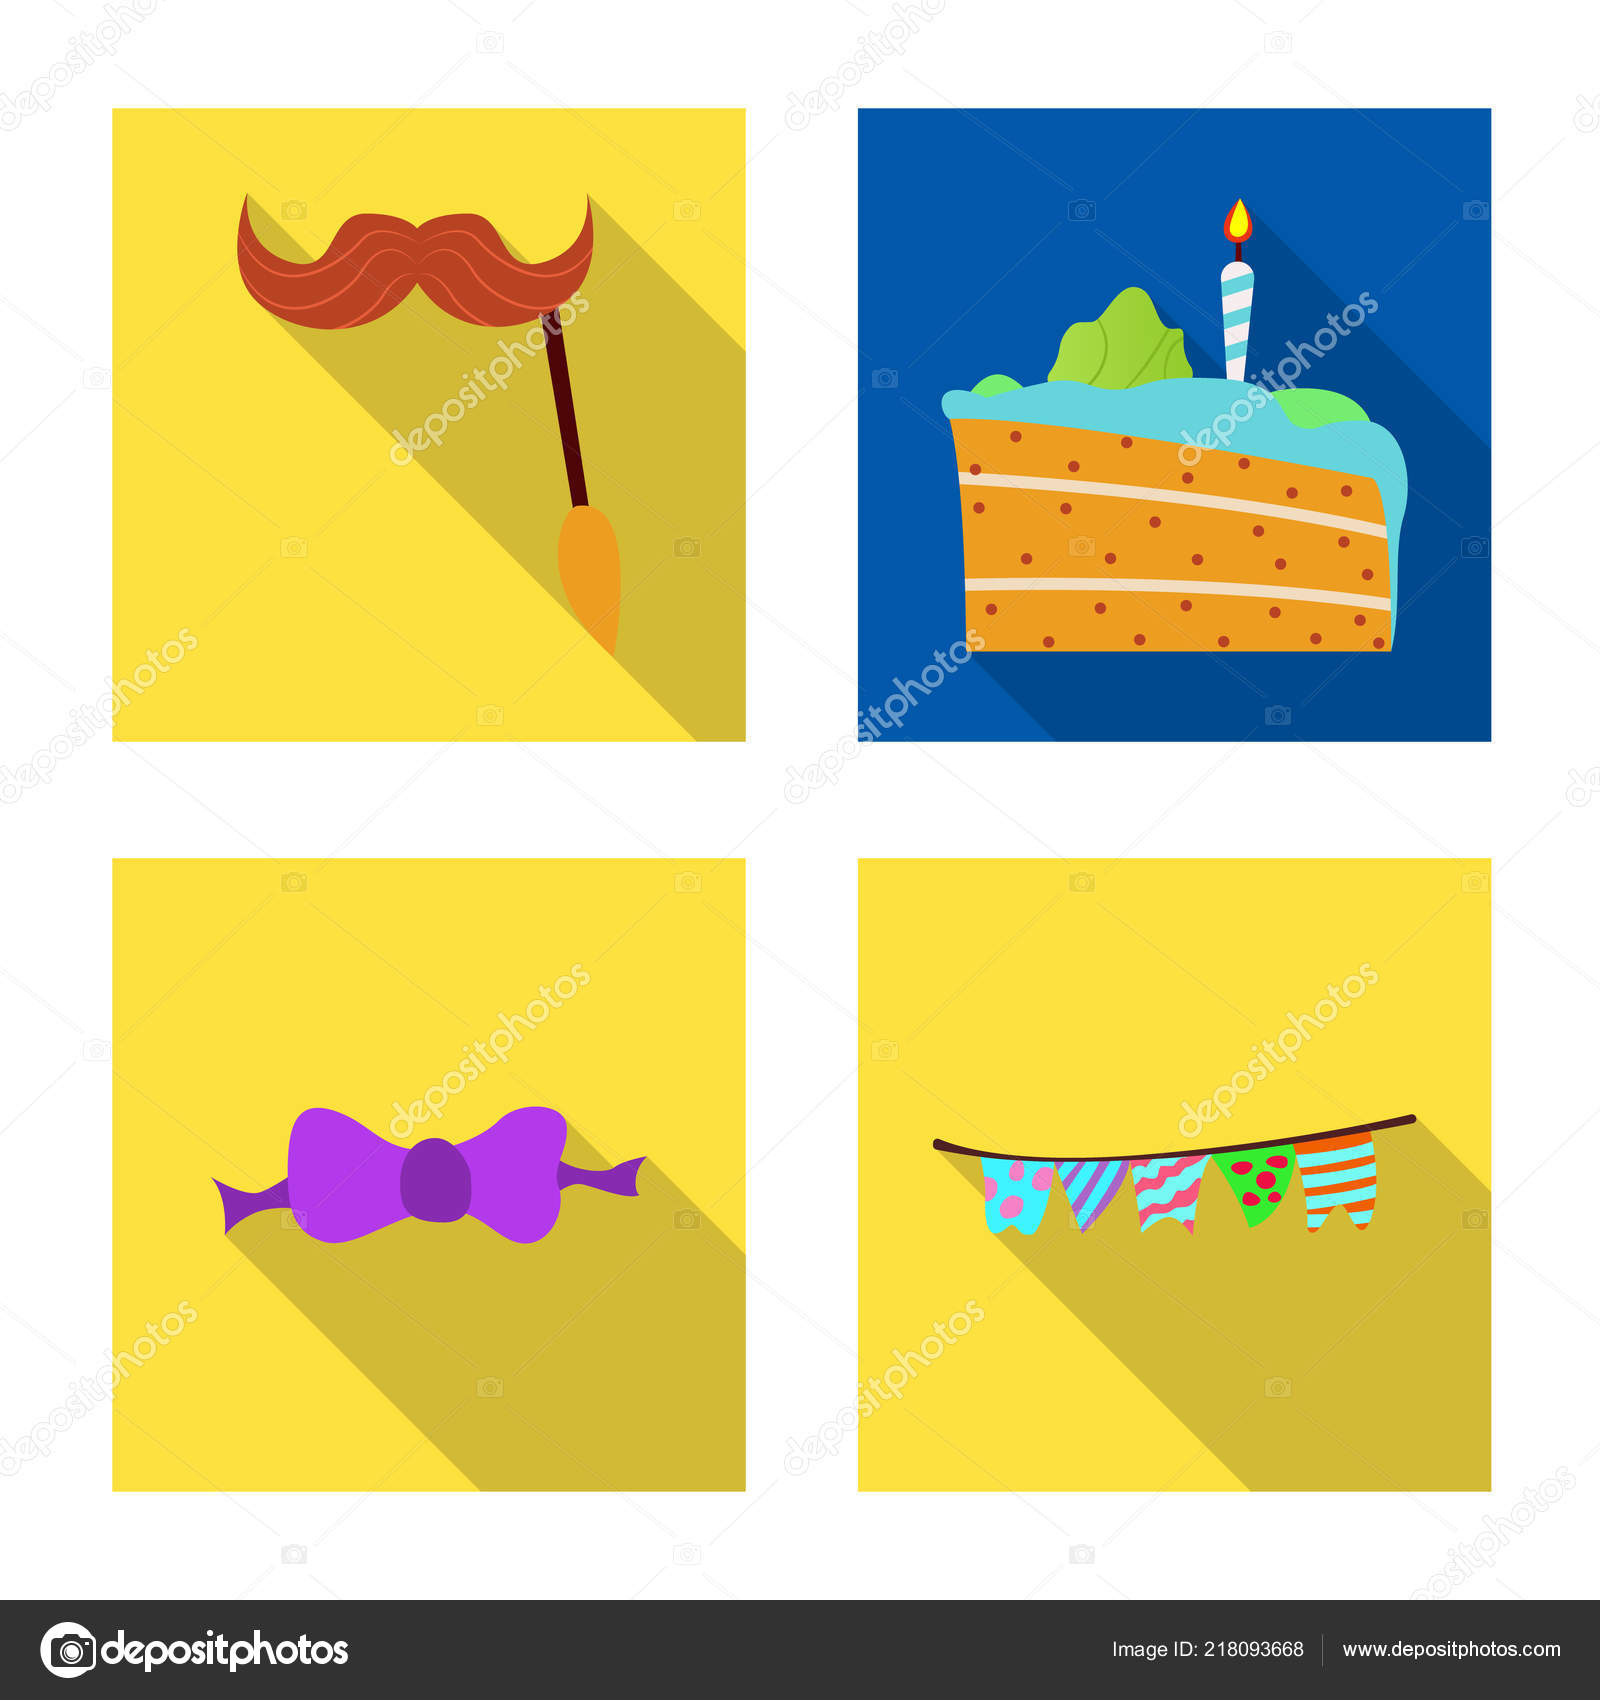 Isolated Object Of Party And Birthday Symbol Collection Of Party